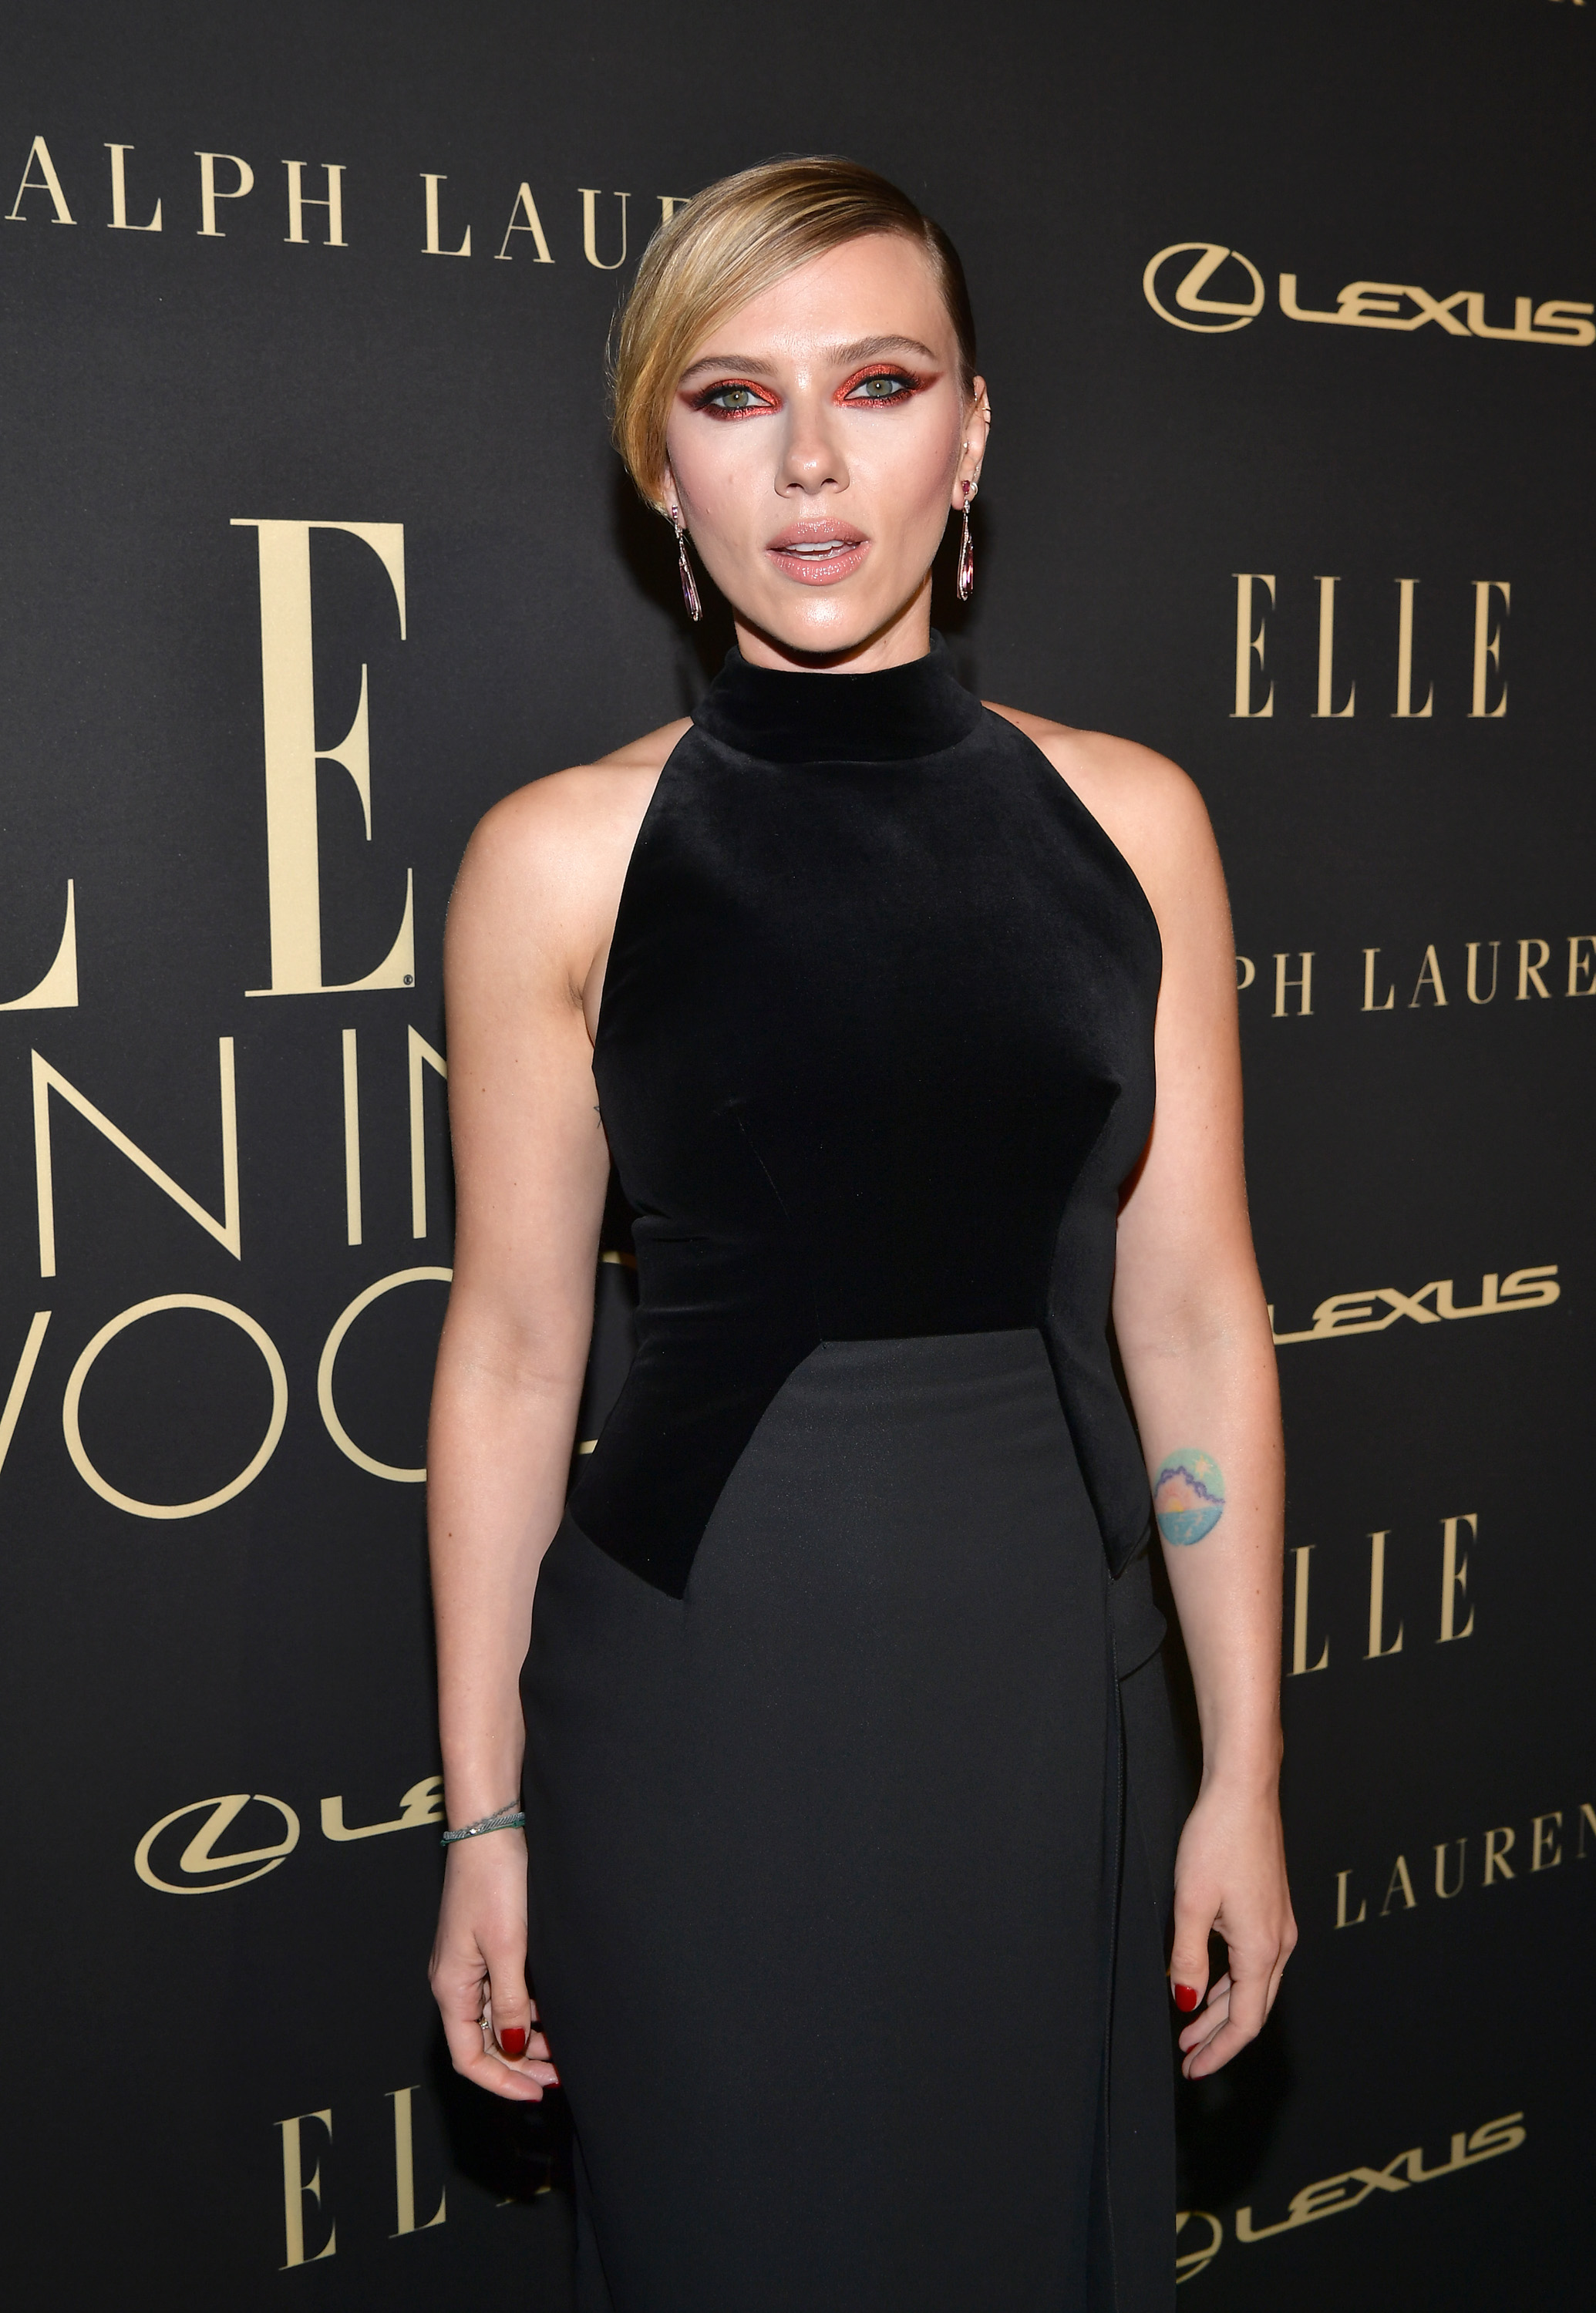 Scarlett Johansson on an all female Marvel movie: I think audiences want it & I'm pushing for the film